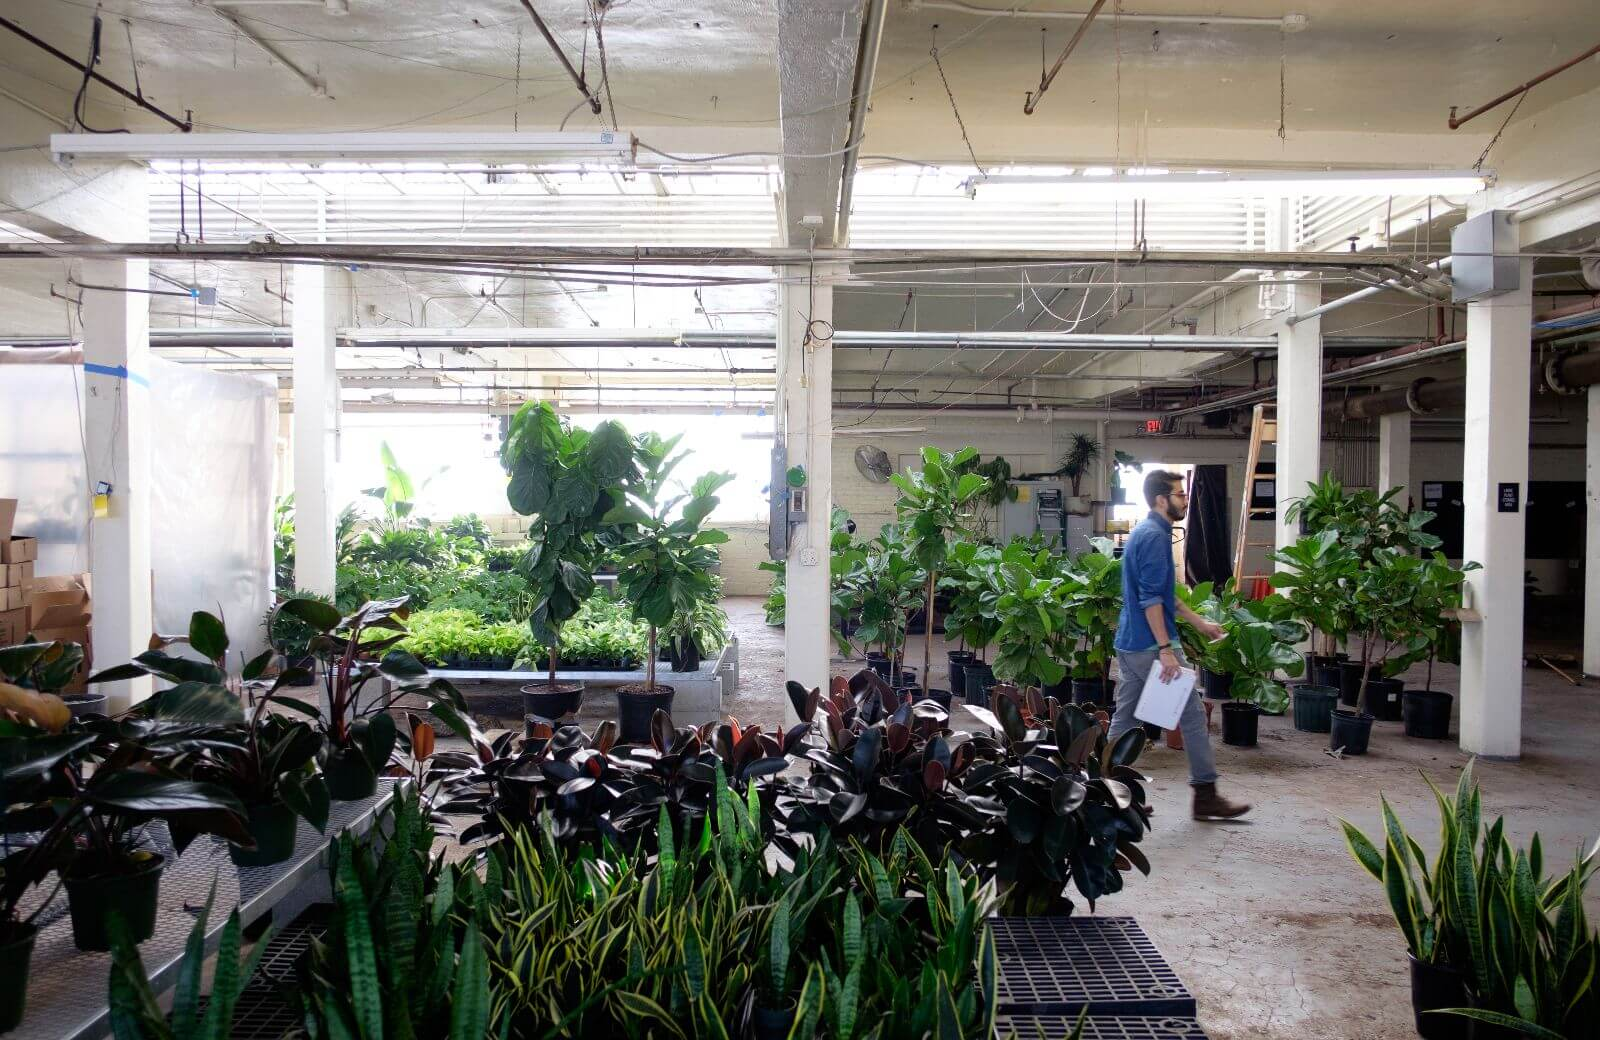 global-workplace-practices-office-plants